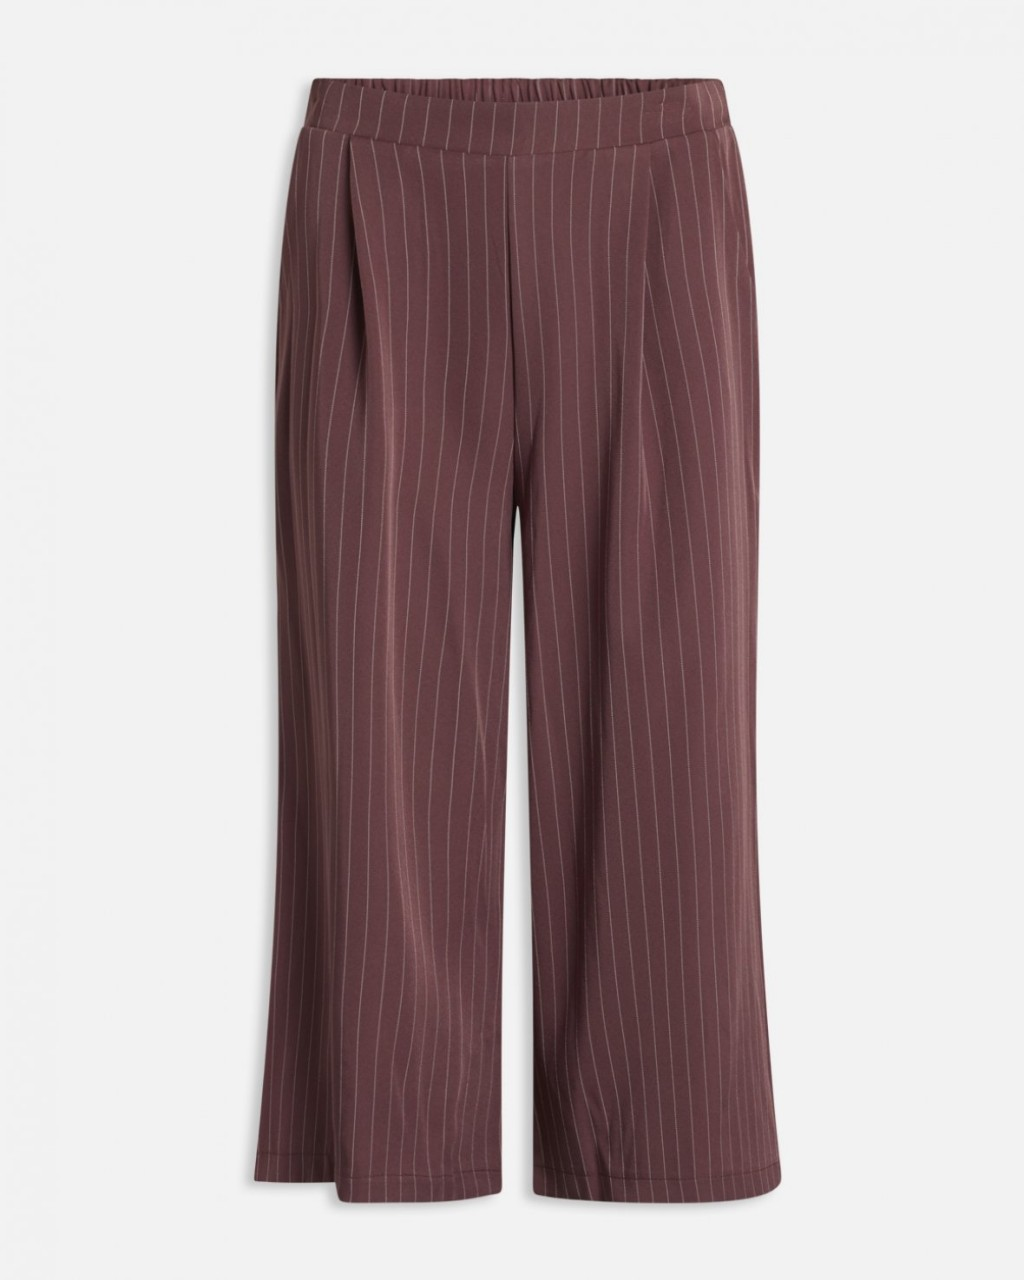 Nui pants - rose/cream